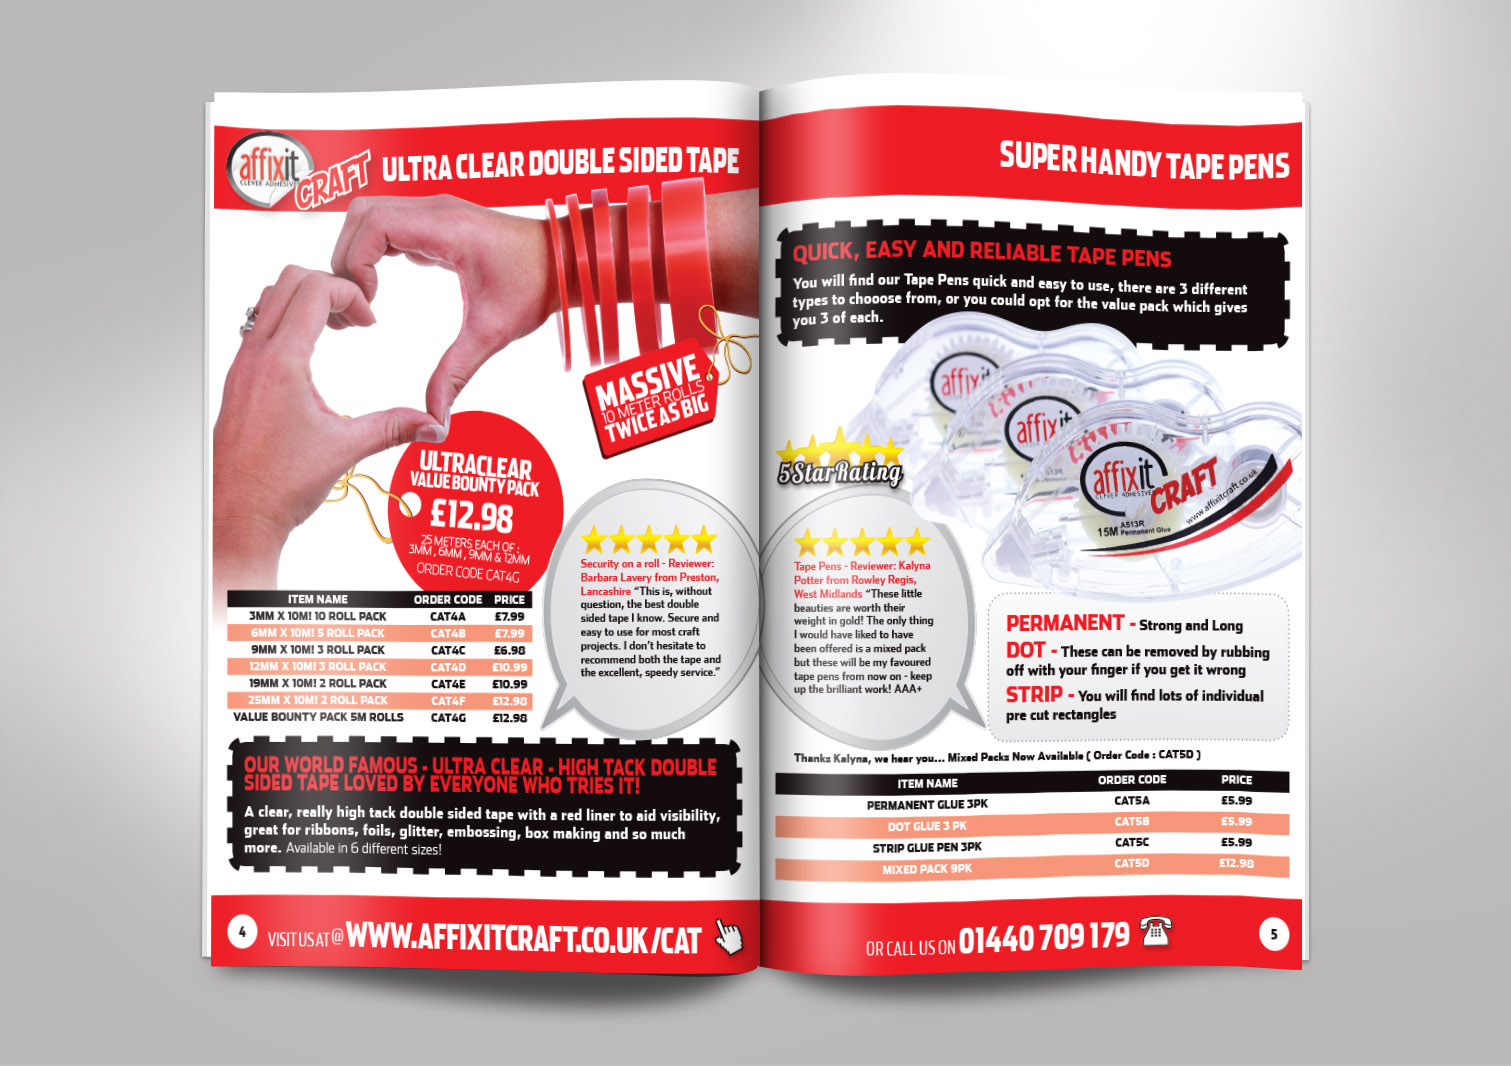 Affixit Craft Order Catalogue Inside Pages 4 and 5